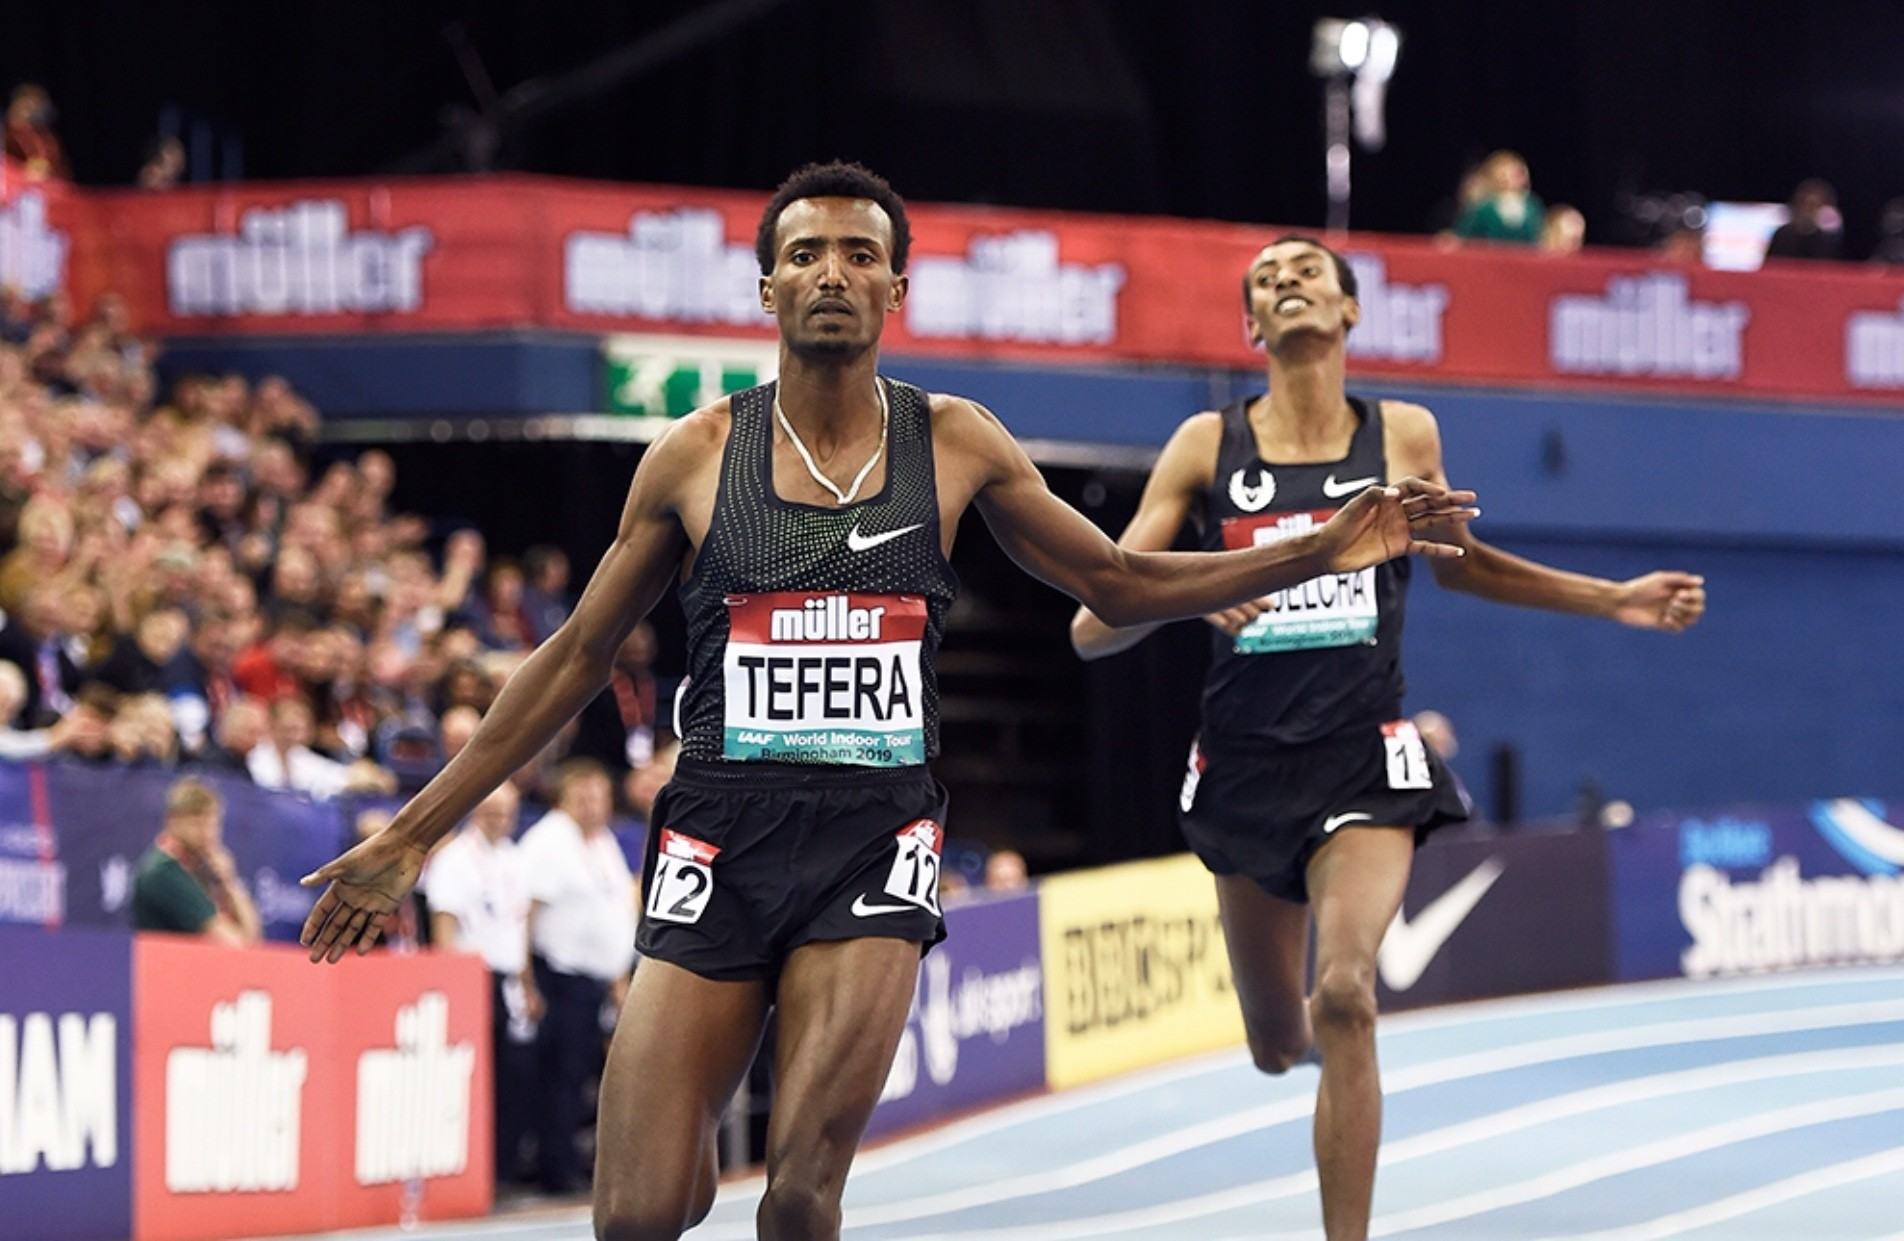 Samuel Tefera breaks long standing world indoor 1500m Record in Birmingham, Yomif was second